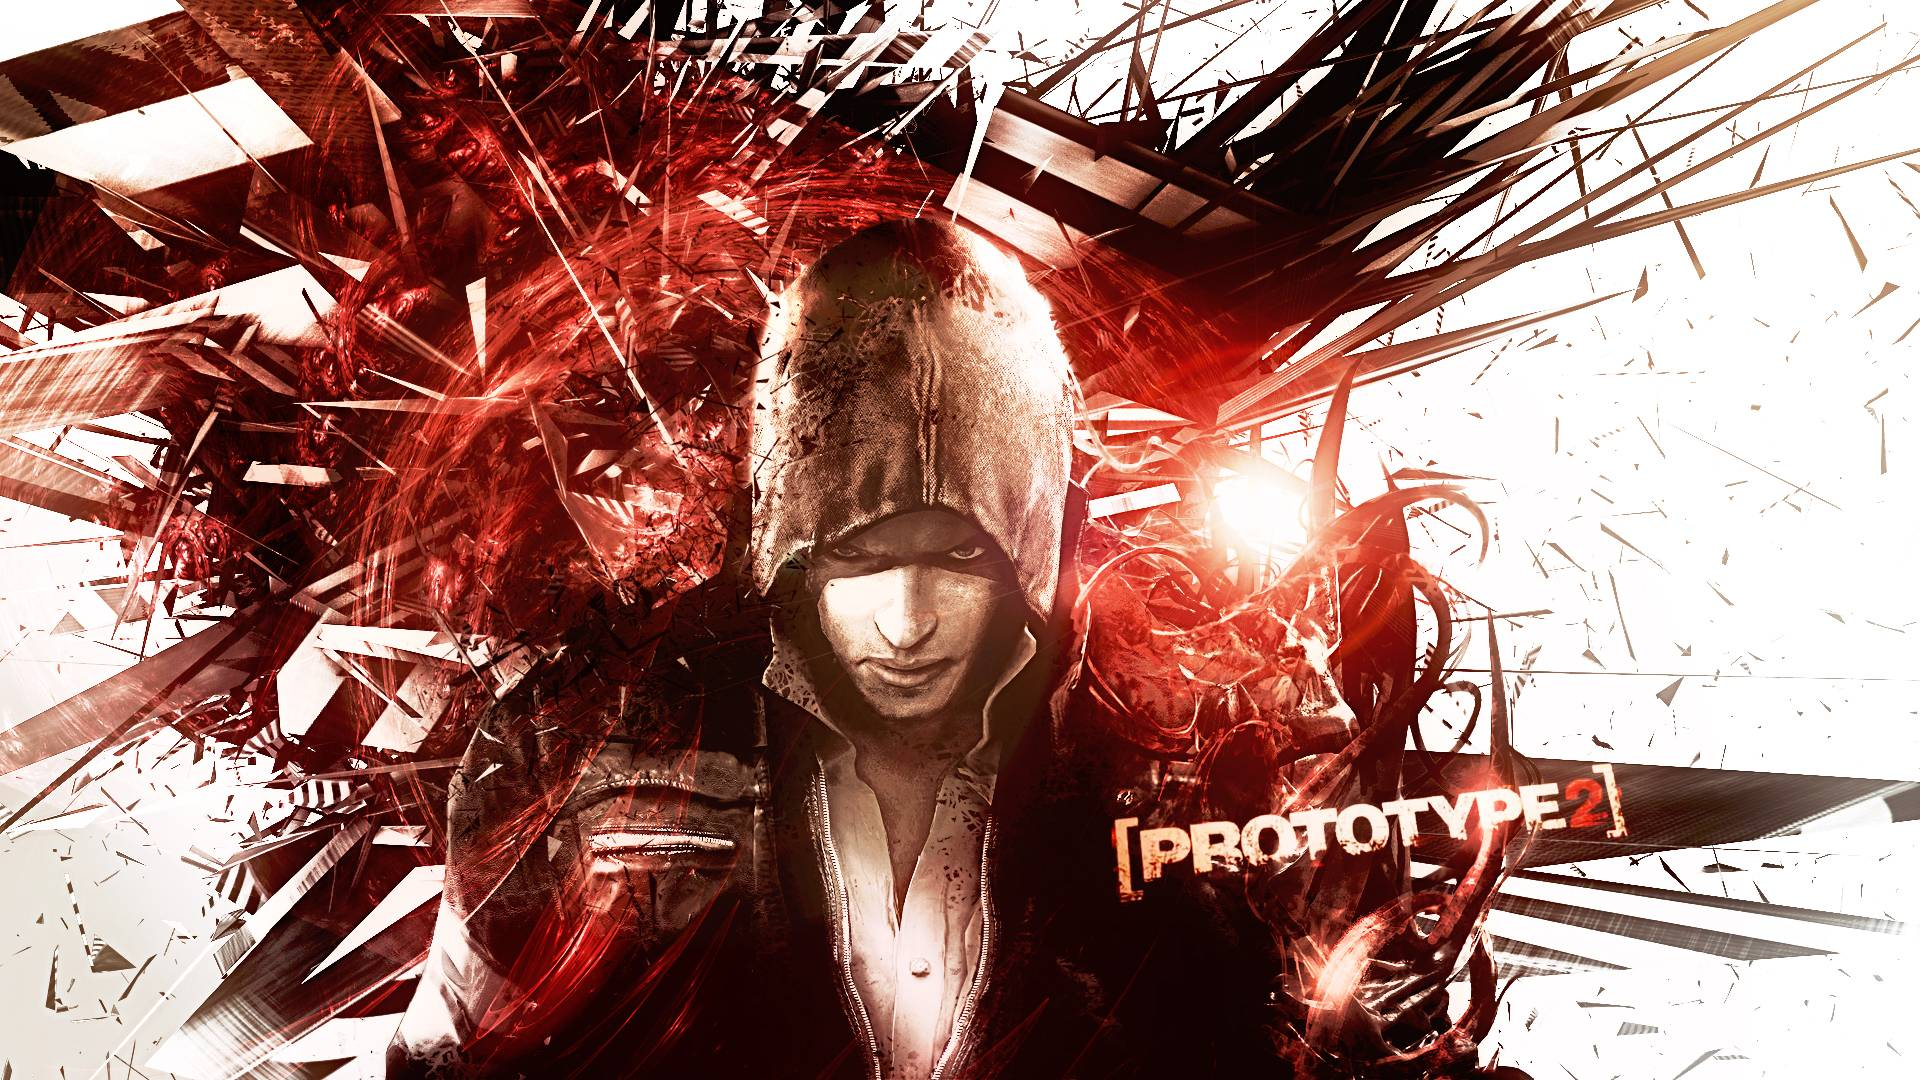 prototype 2 wallpapers in hd